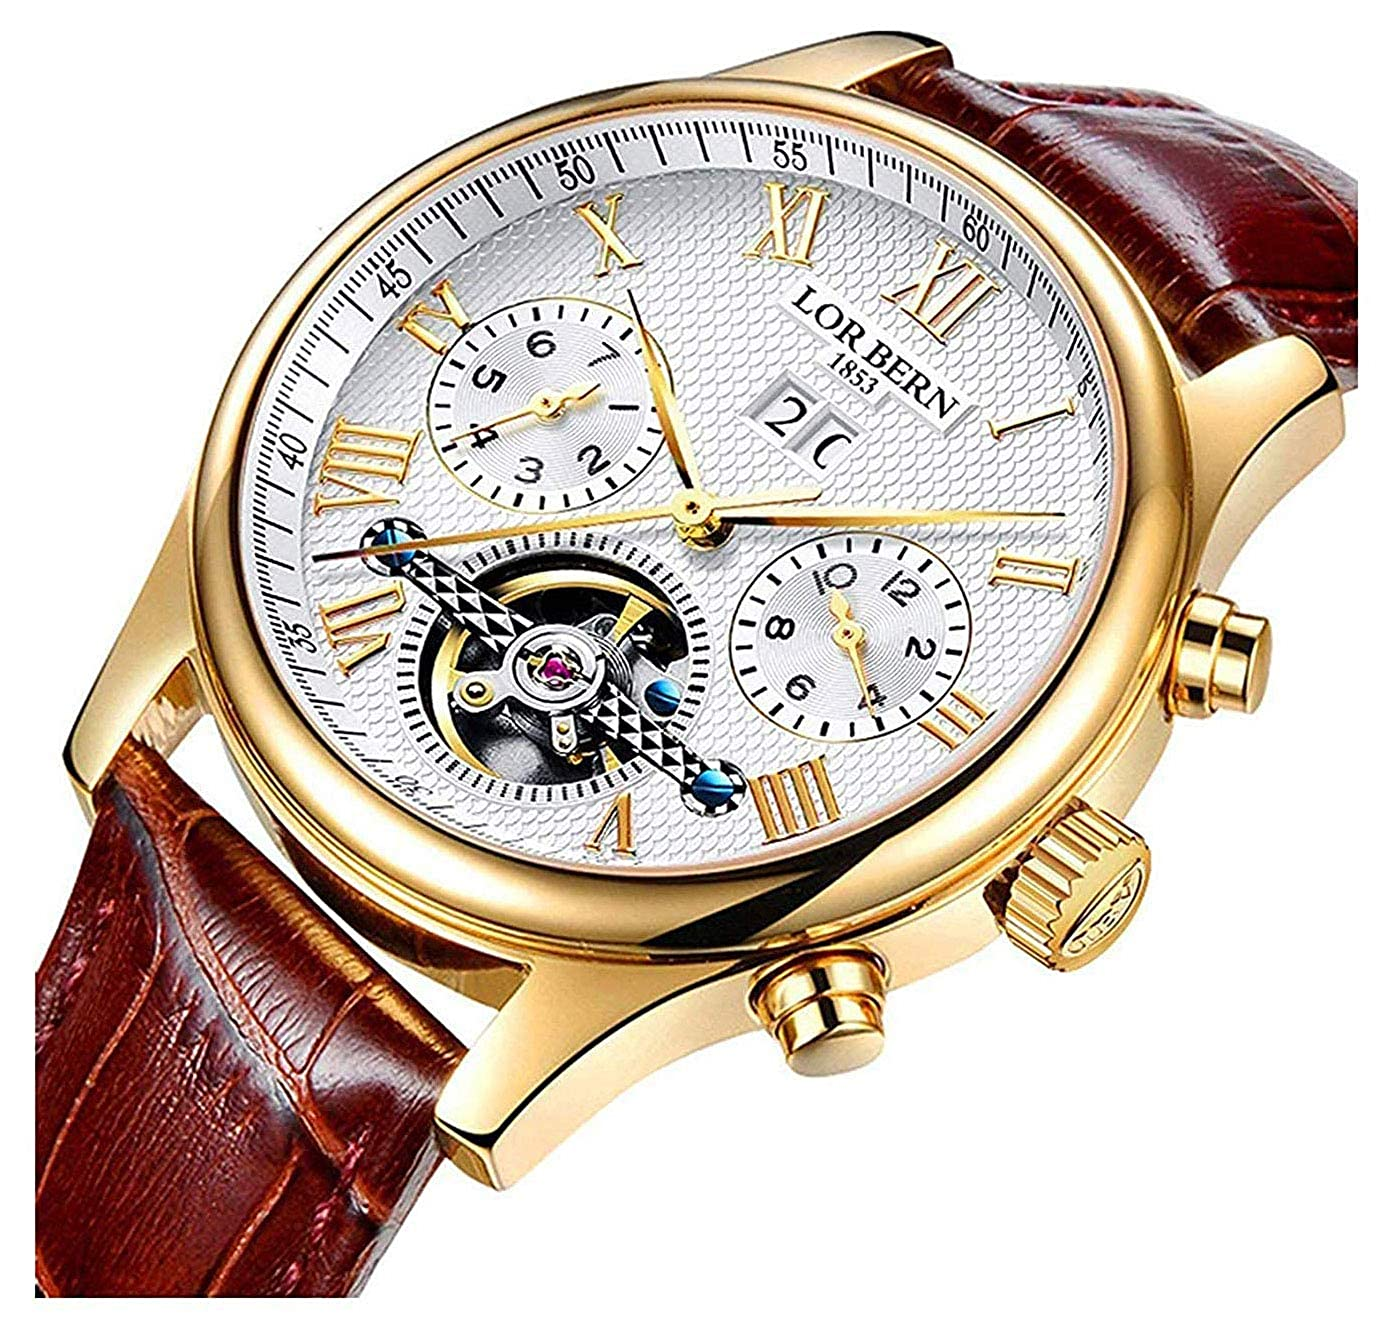 66b85b0f0 Amazon.com: Swiss Brands Mens Automatic Mechanical Wrist Watches Gold  Silver Stainless Steel Date Skeleton Watch (Brown Leather): Watches